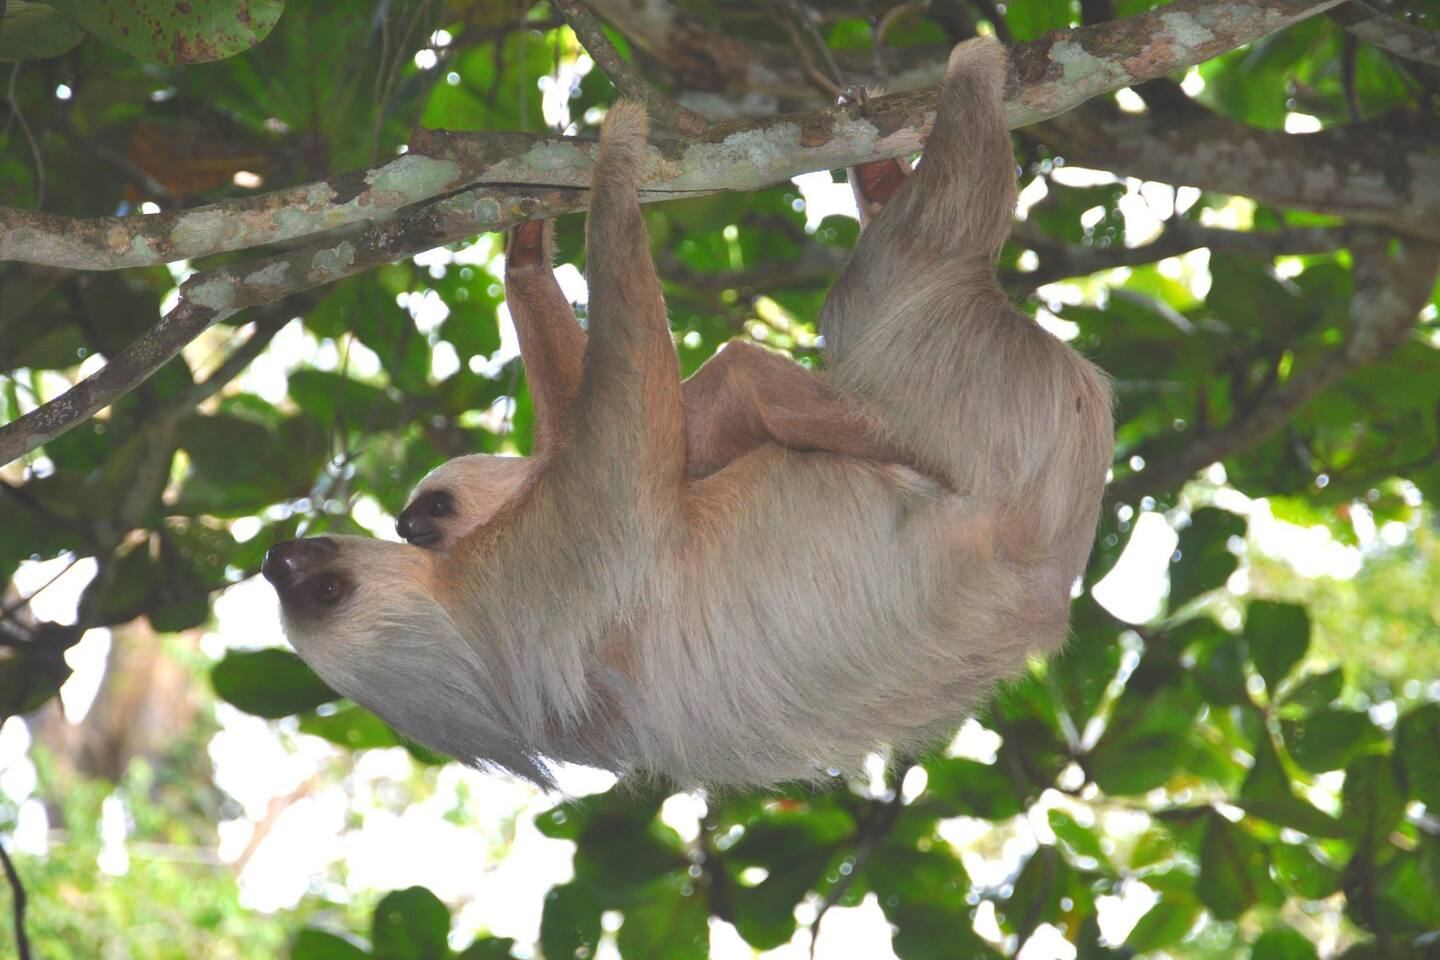 The sloth that lives in our Almendra tree, carrying her baby.